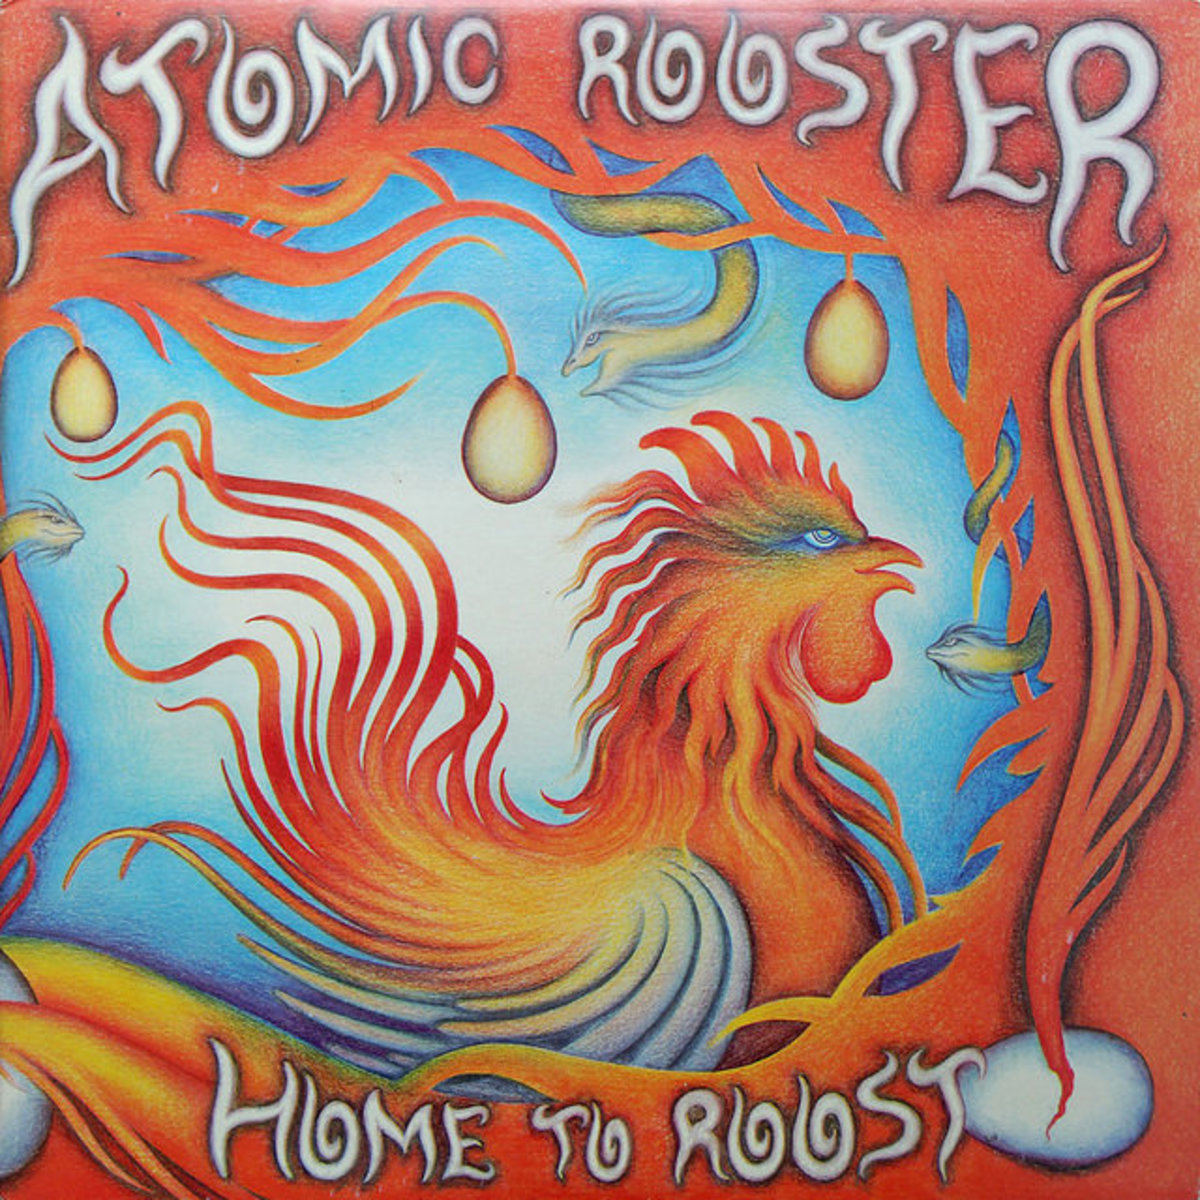 "Atomic Rooster ""Home To Roost"" Mooncrest Records CRD 2 12"" LP Vinyl Record UK Presasing (1977)"